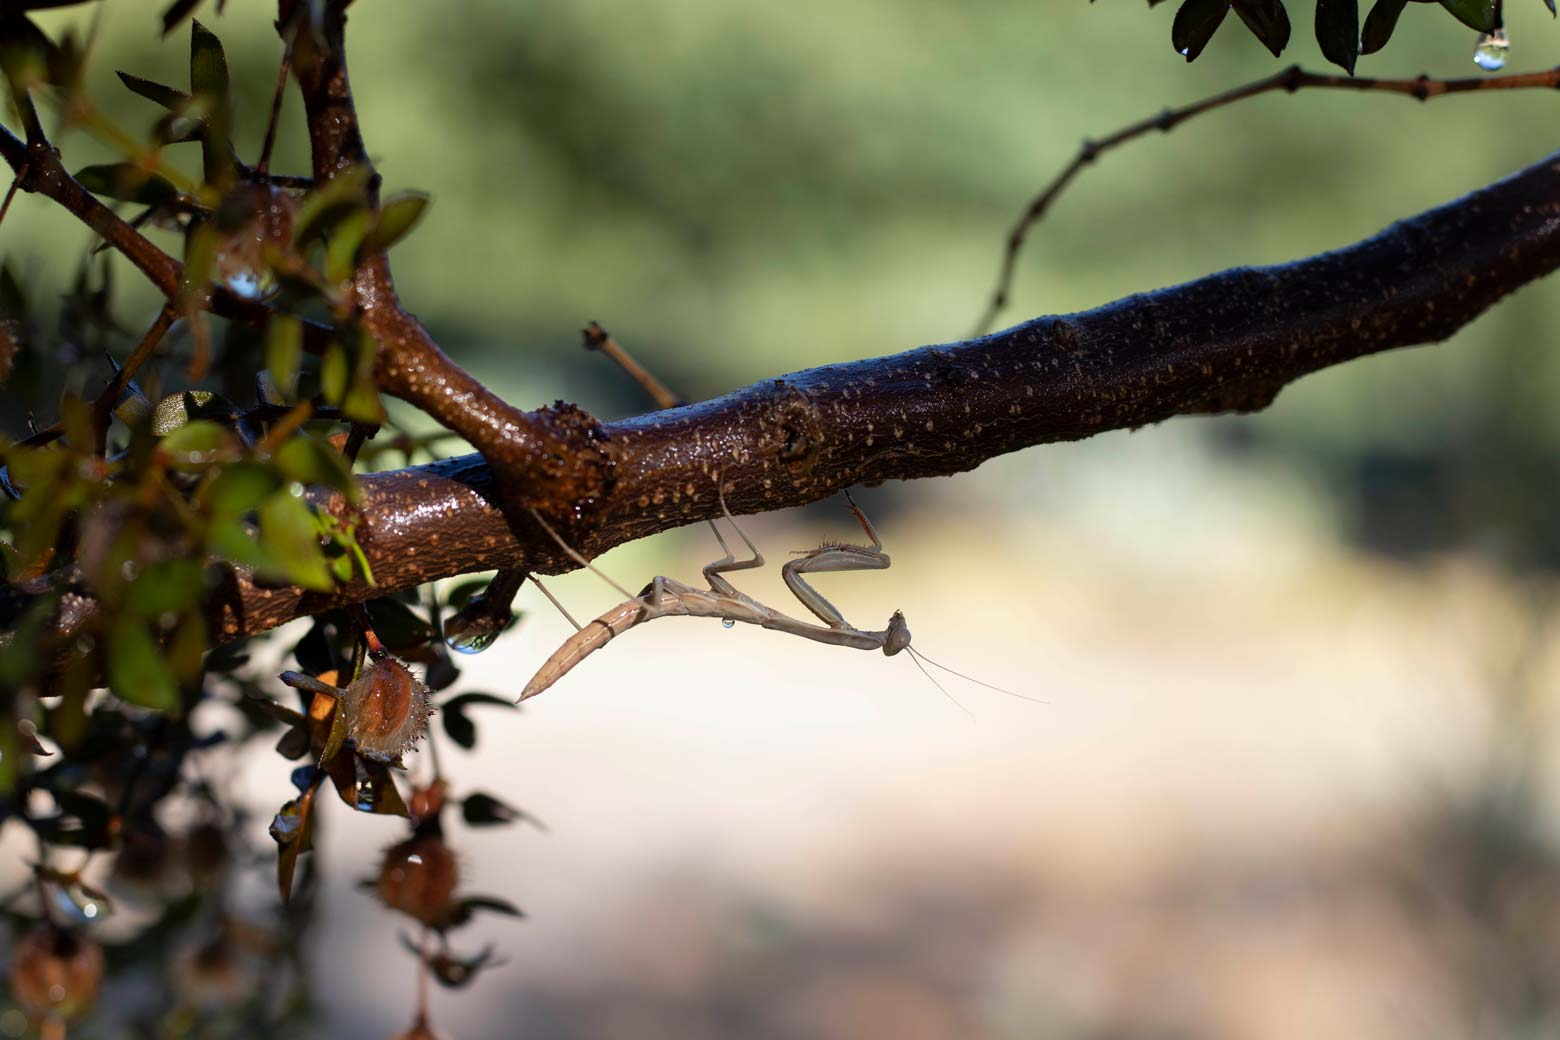 A praying mantis perches on the branch of a Creosote bush.